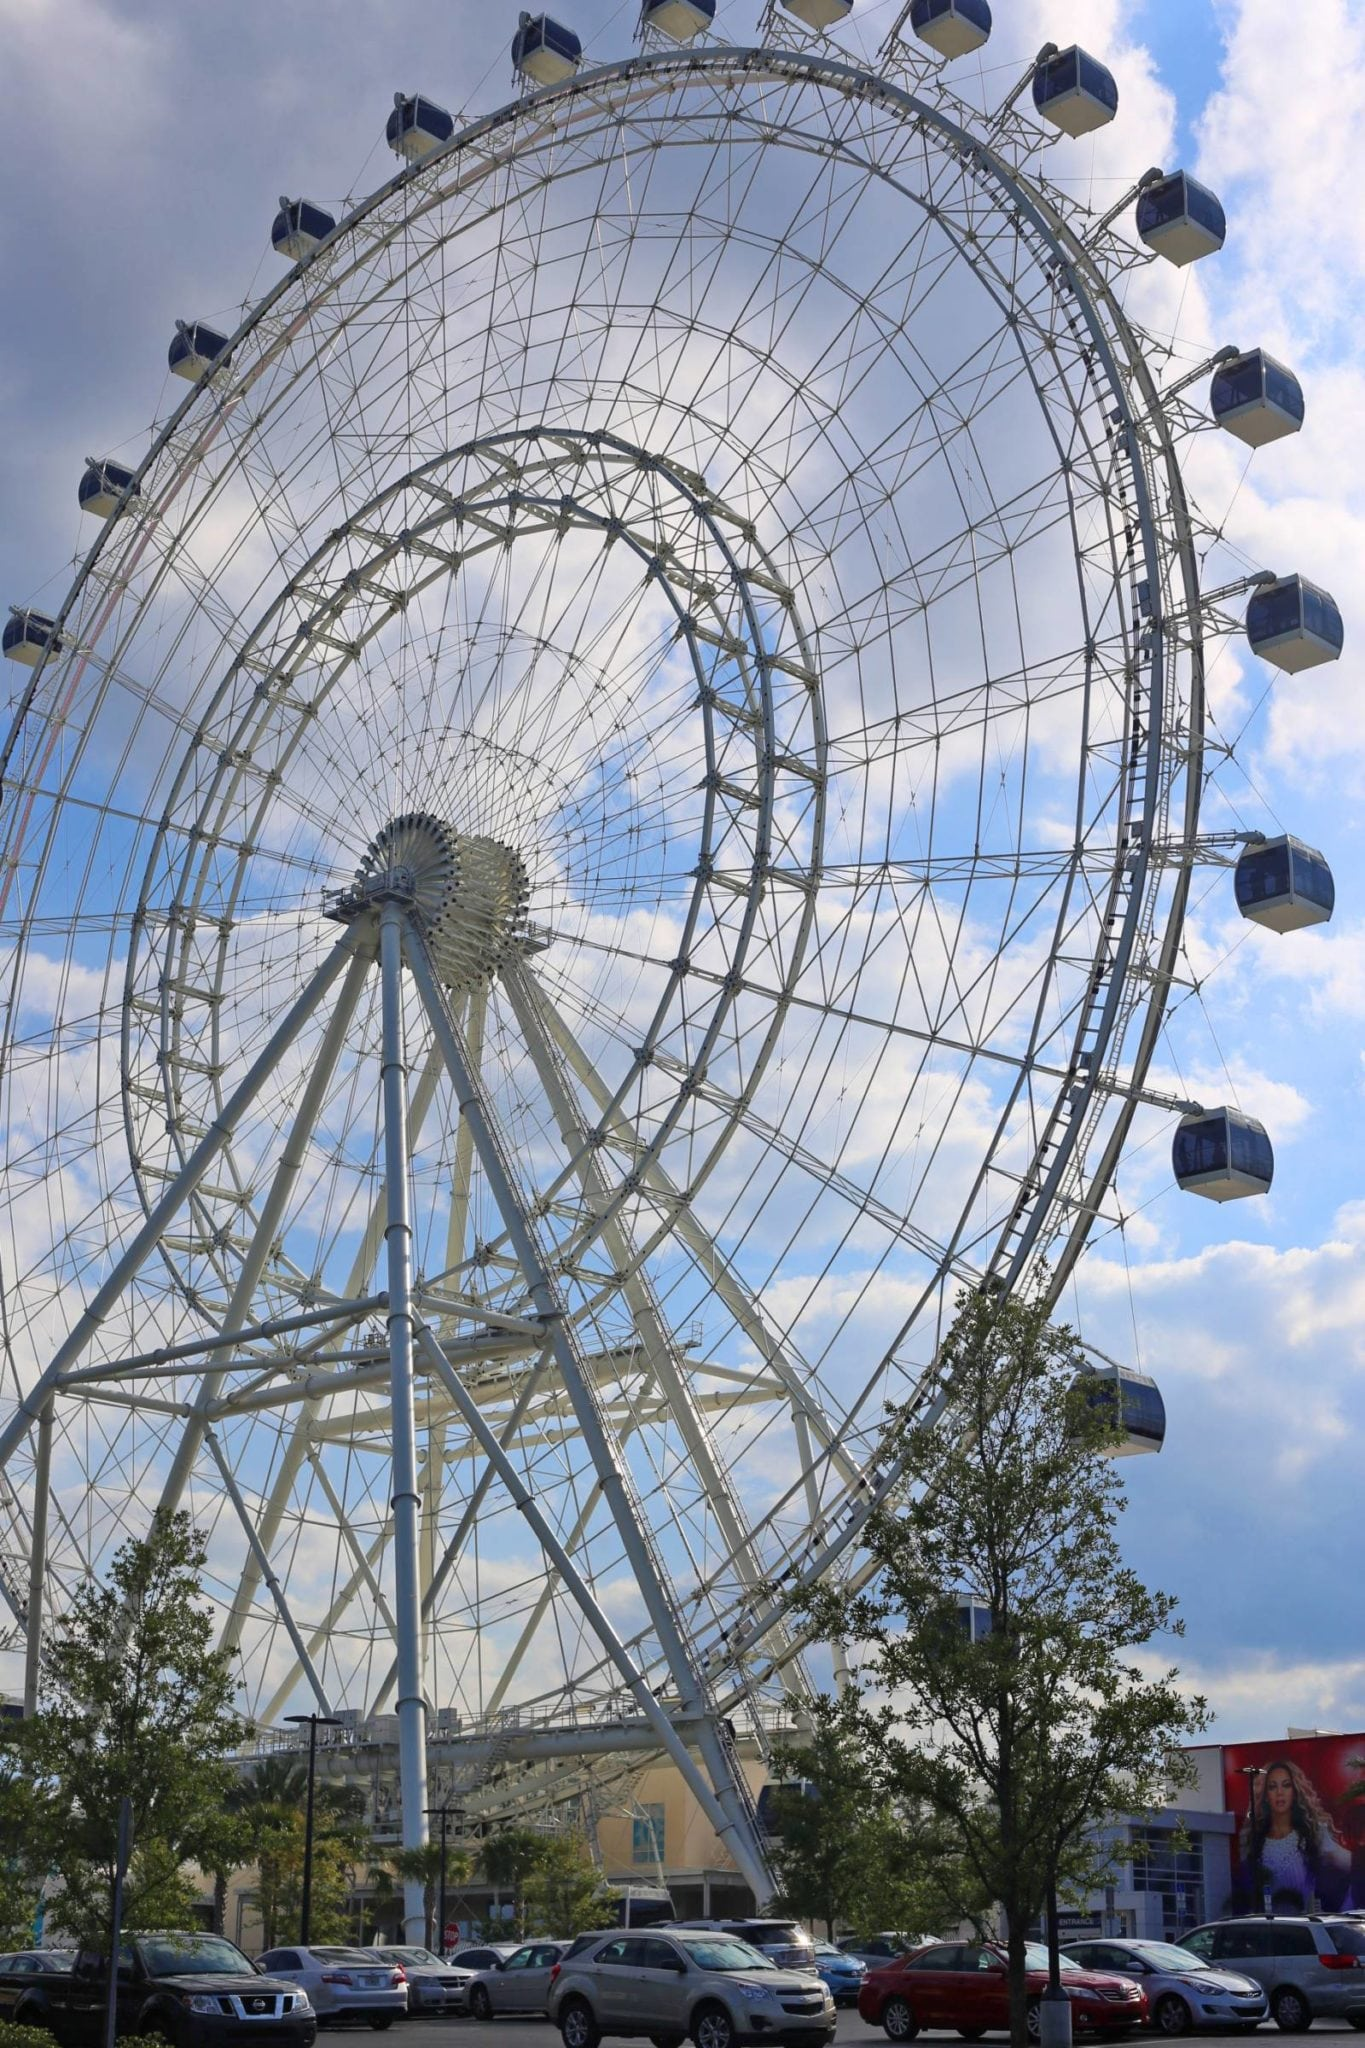 the orlando eye, orlando, florida | the best attractions in orlando, florida | Orlando Eye | what to do in orlando | Living in orlando | Mash Elle beauty blogger | palm trees | Florida